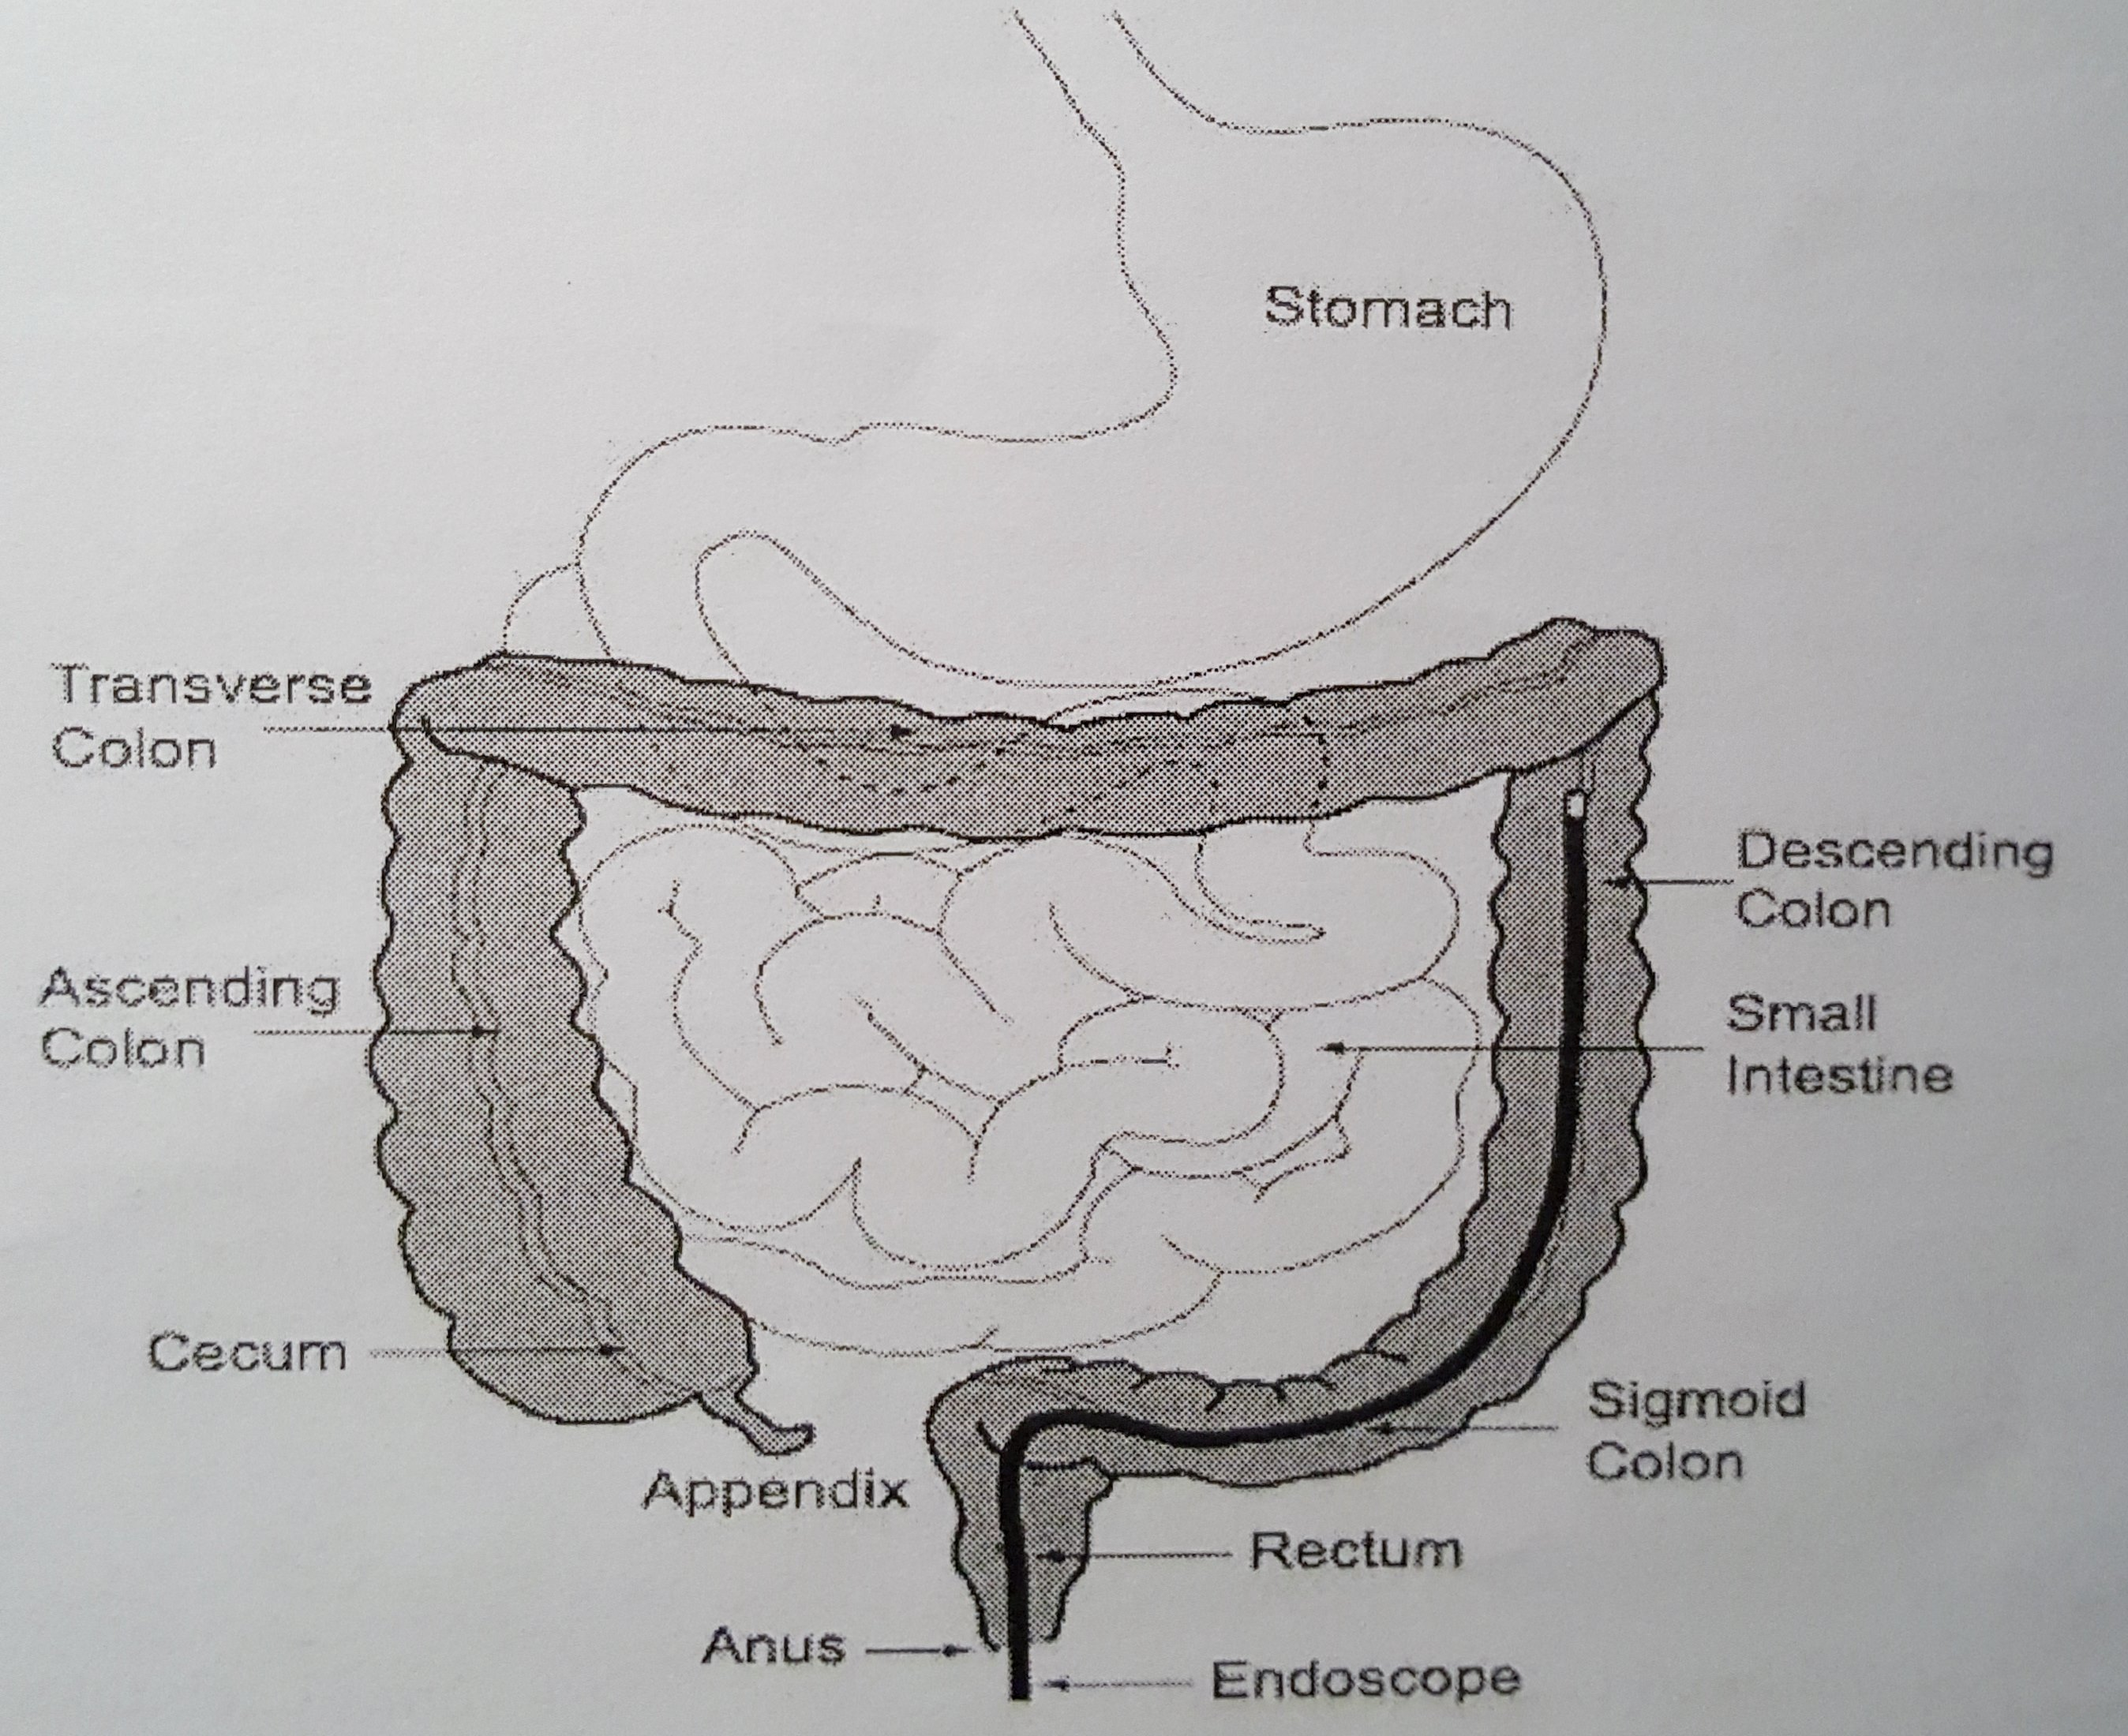 Being told it's bowel cancer in the middle of the colonoscopy is... an unusual way to hear